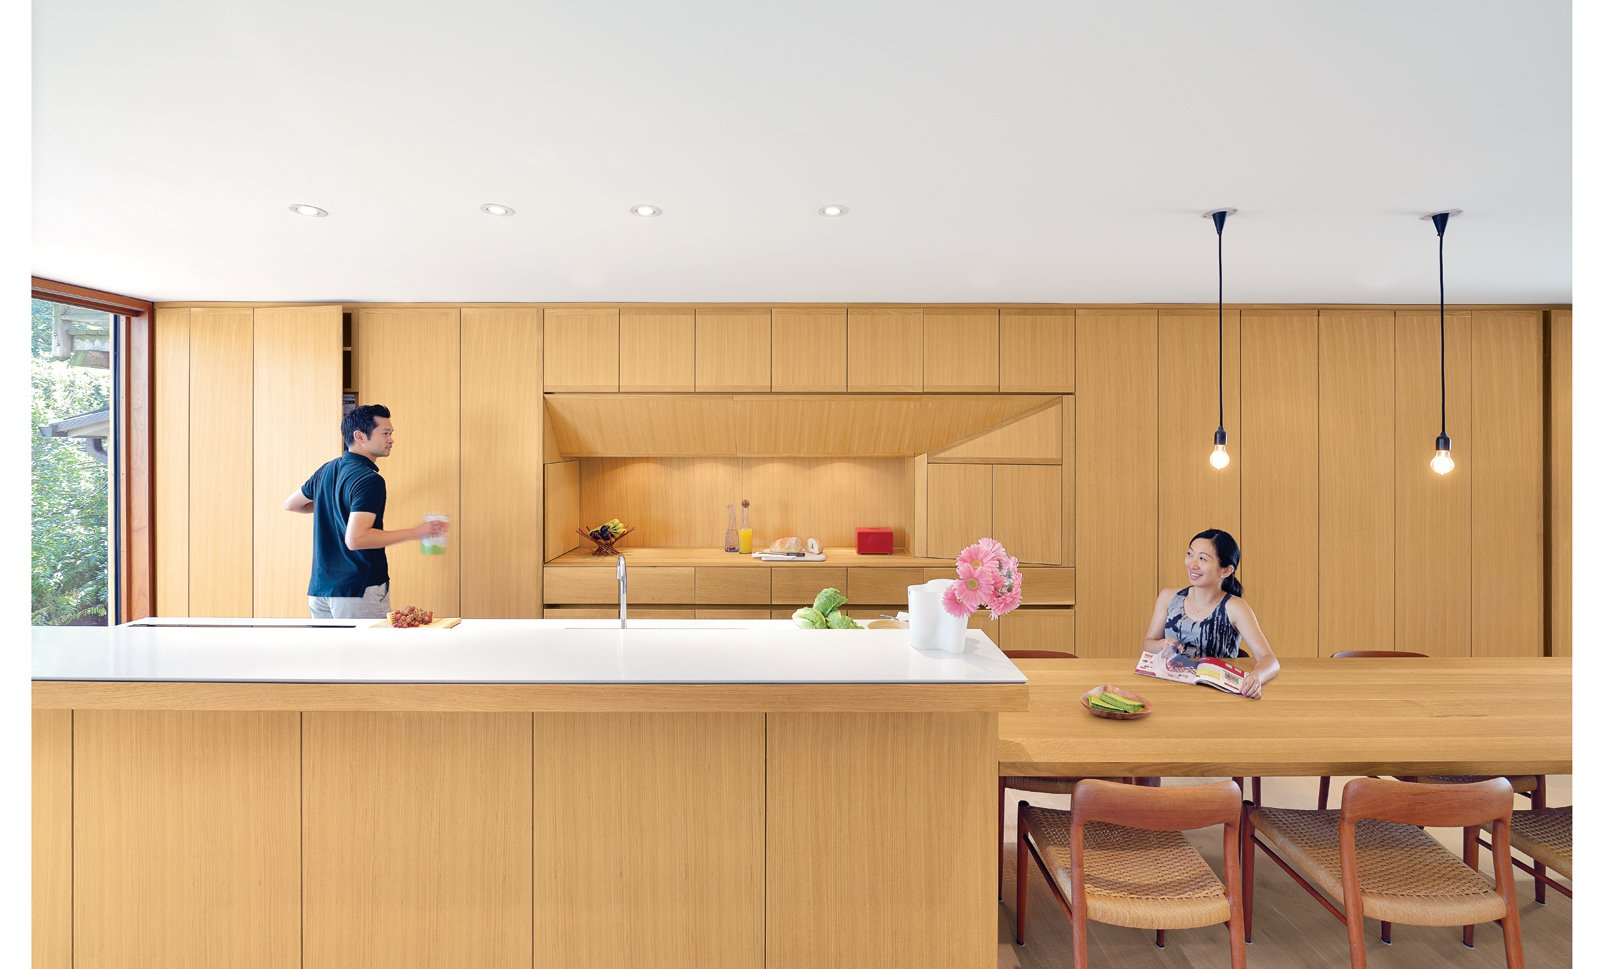 The white oak used for the cabinets, kitchen island, and dining table is finished with double-boiled linseed oil, which can be reapplied by the homeowners as the wood mellows and patinas.